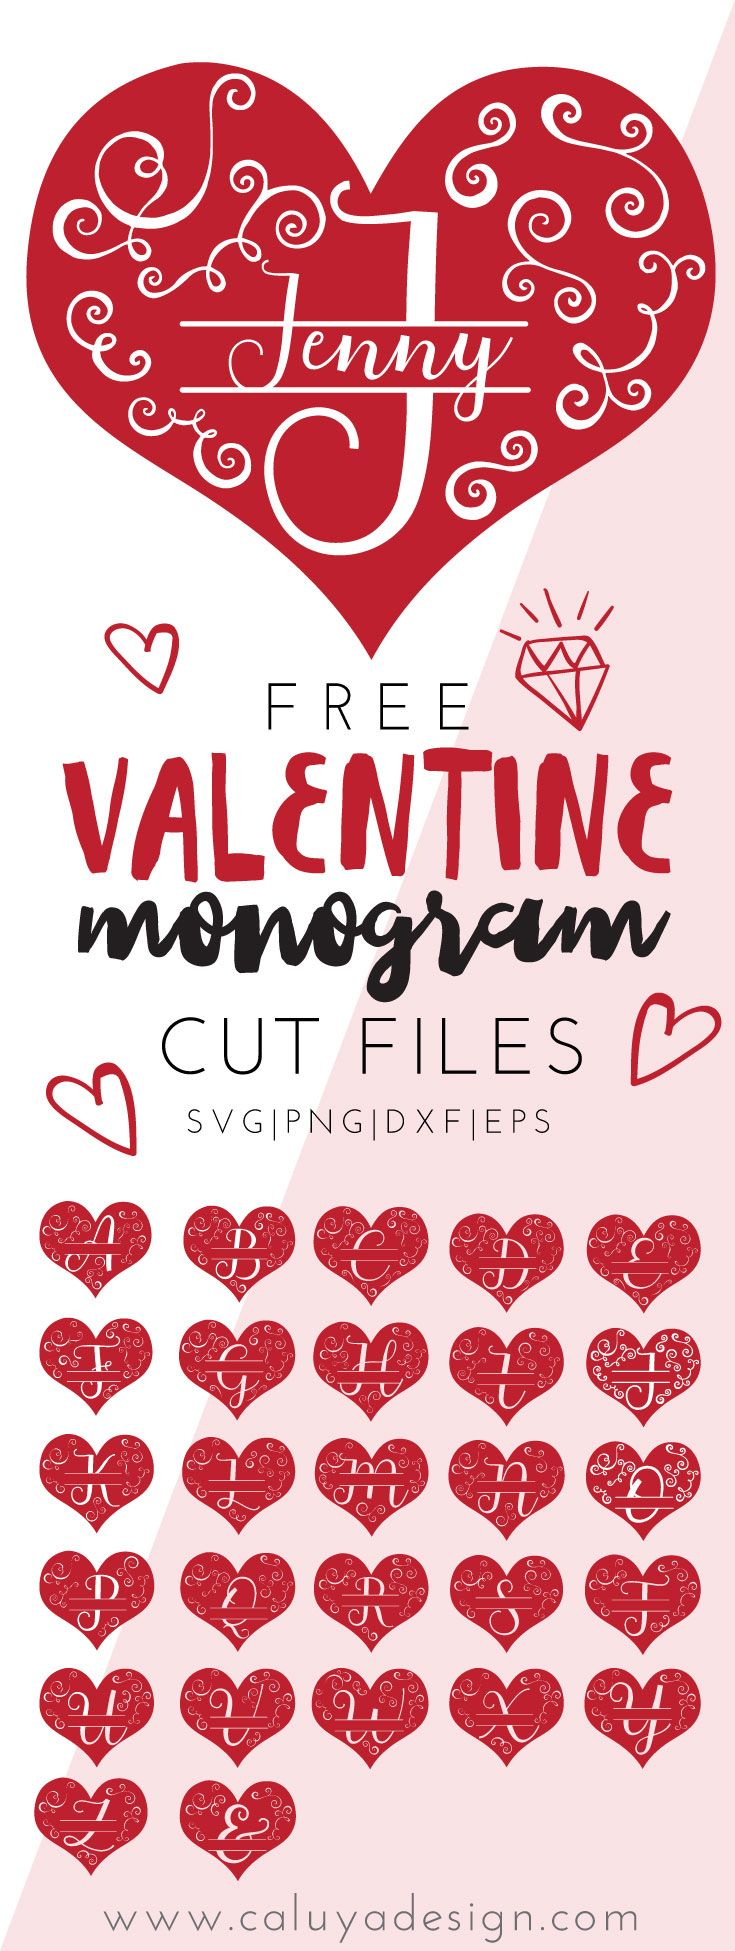 FREE Valentine Heart Monogram SVG cut file download. Free Valentine Heart monogram SVG, PNG, EPS, DXF cut file for Cricut, Cameo Silhouette and other major Cutting machines! Valentine Svg file, Free Valentine SVG file, Free Valentine cut file